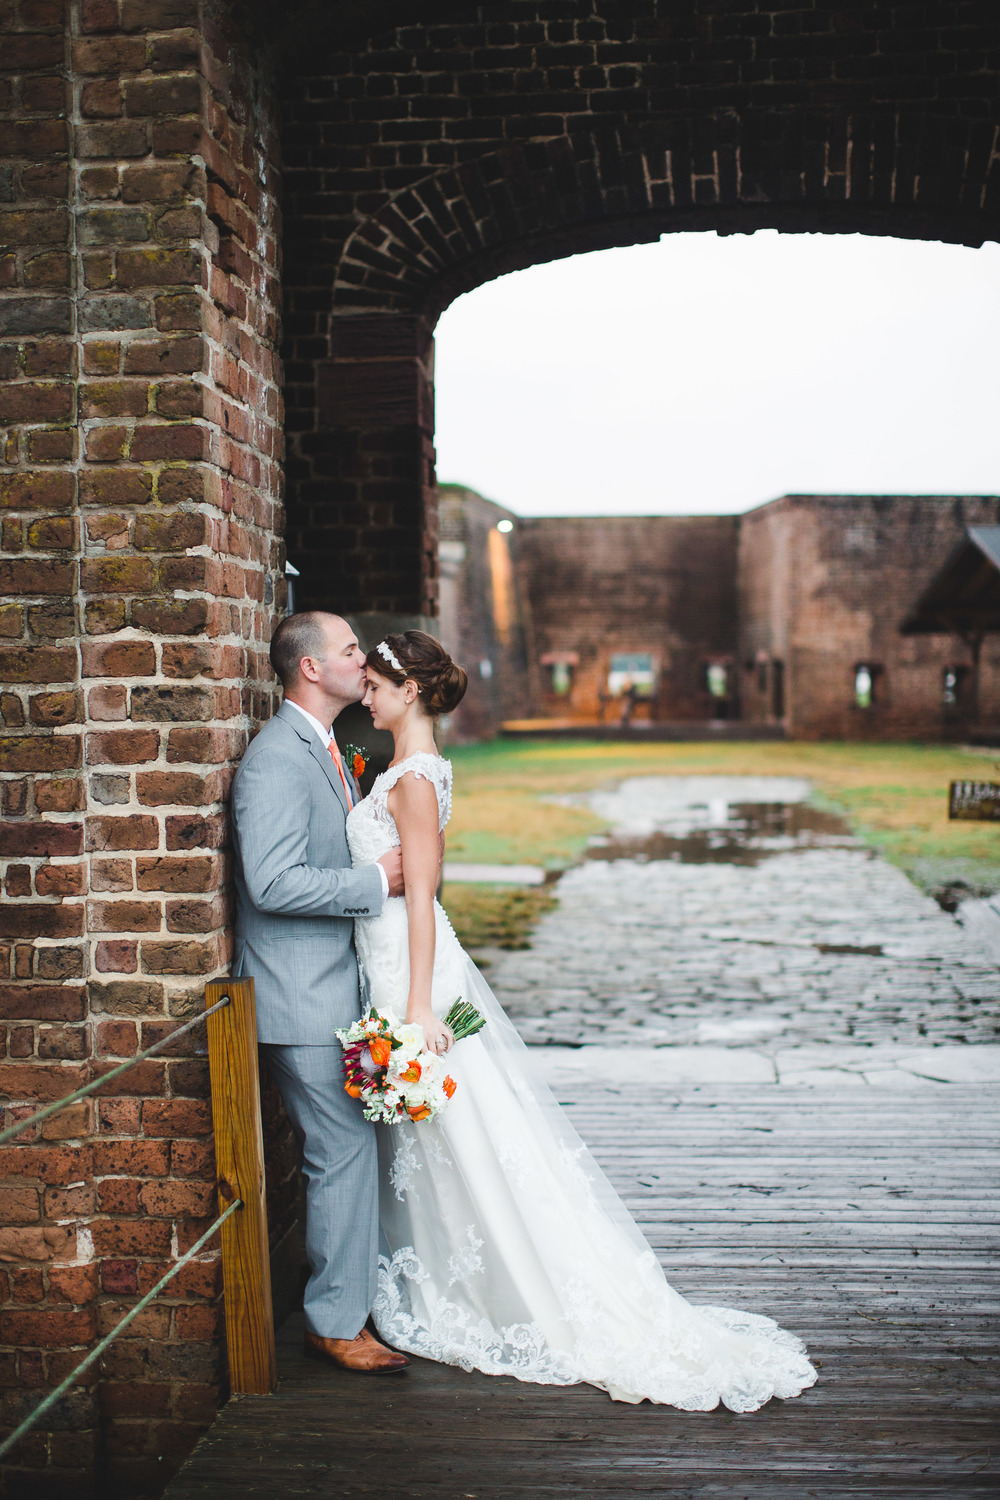 izzy-hudgins-photography-ivory-and-beau-bridal-boutique-savannah-wedding-planner-savannah-wedding-planning-old-fort-jackson-wedding-historic-wedding-savannah-wedding-florist-rustic-bohemian-wedding-savannah-wedding-savannah-weddings-40.jpg